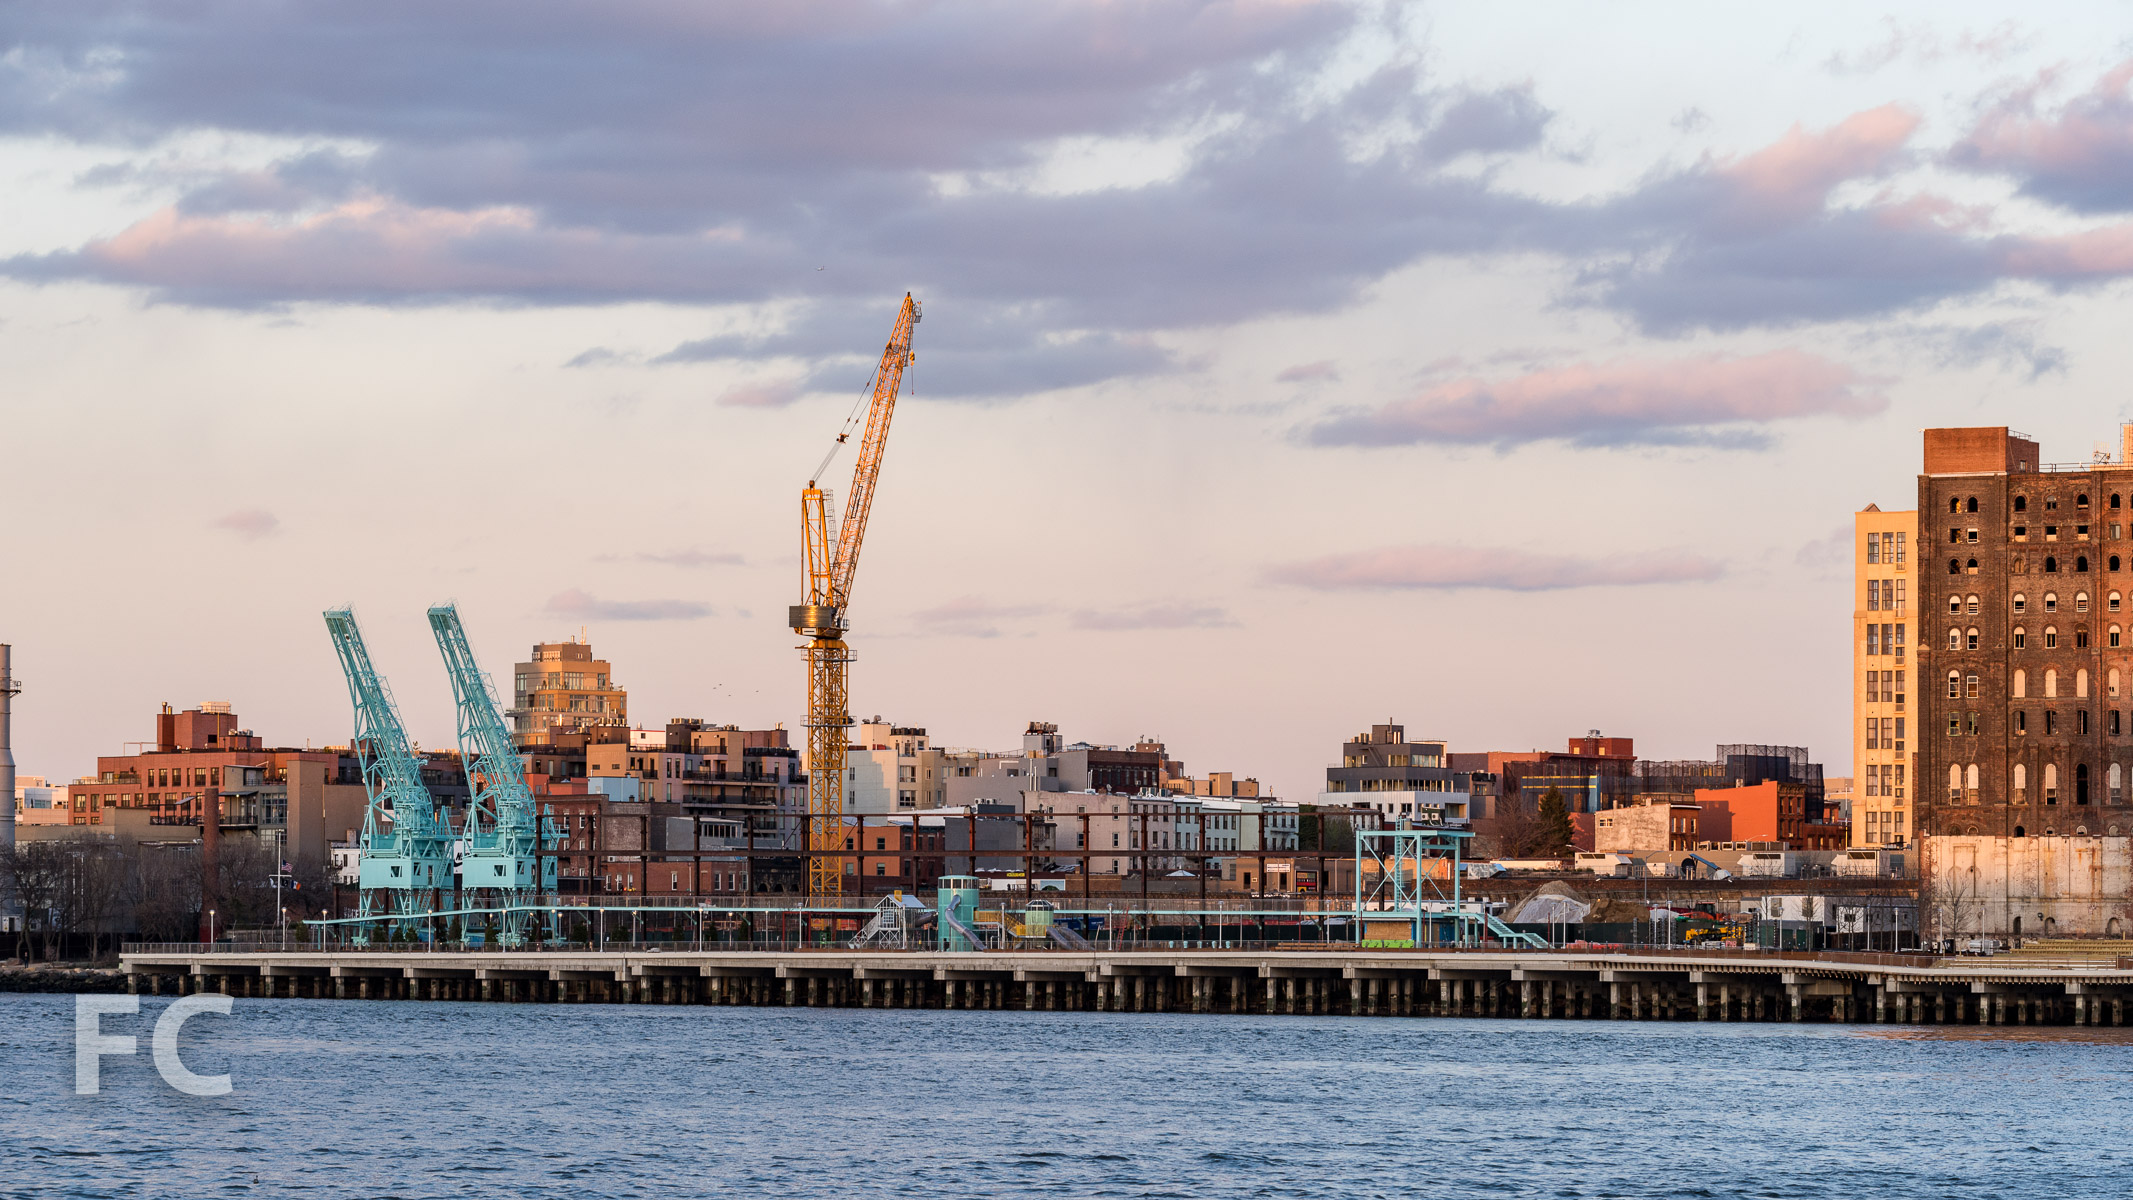 Northern half of the Domino Sugar site with the crane for 260 Kent Avenue (center).